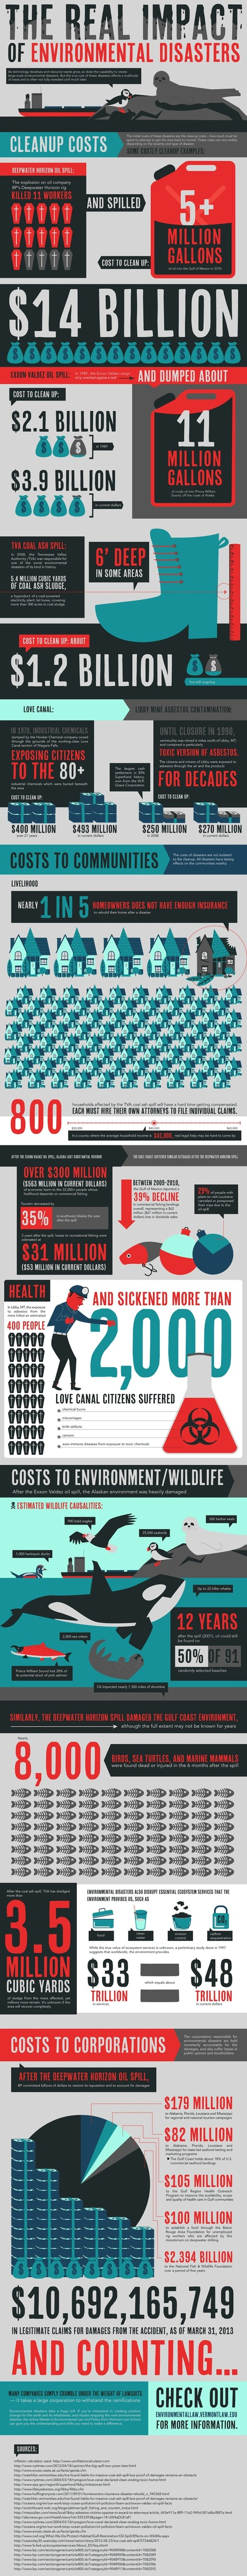 The Real Impact Of Environmental Disasters [Infographic] | ecosystem integration | Scoop.it